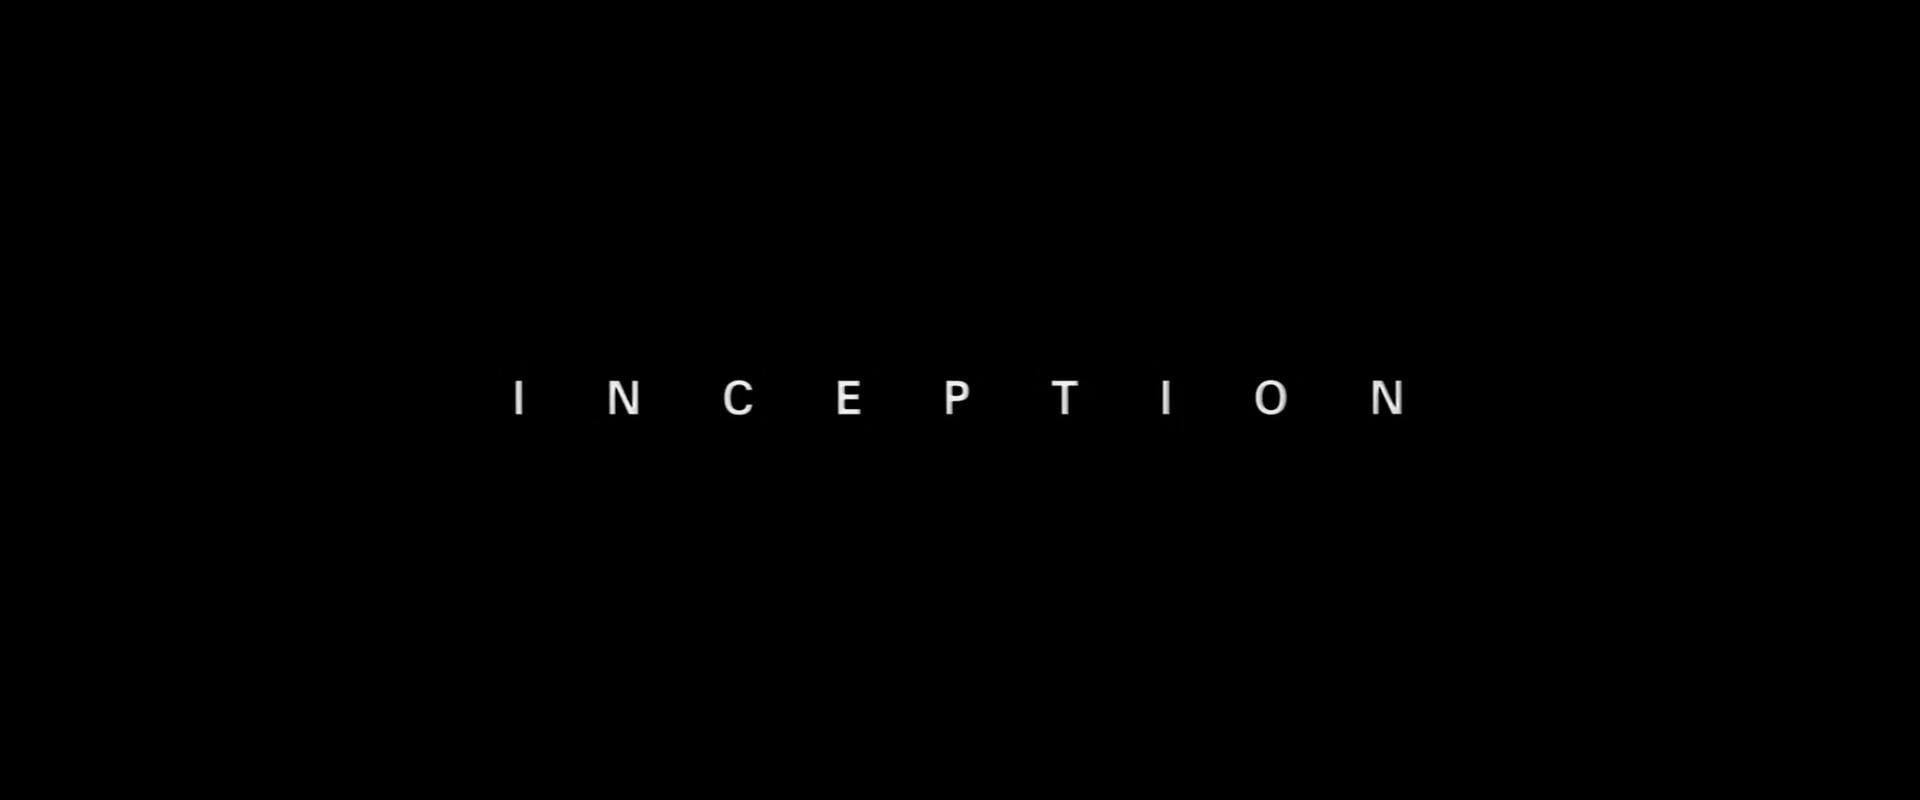 Christopher Nolan's Inception - The 75 Best Movies of Decade